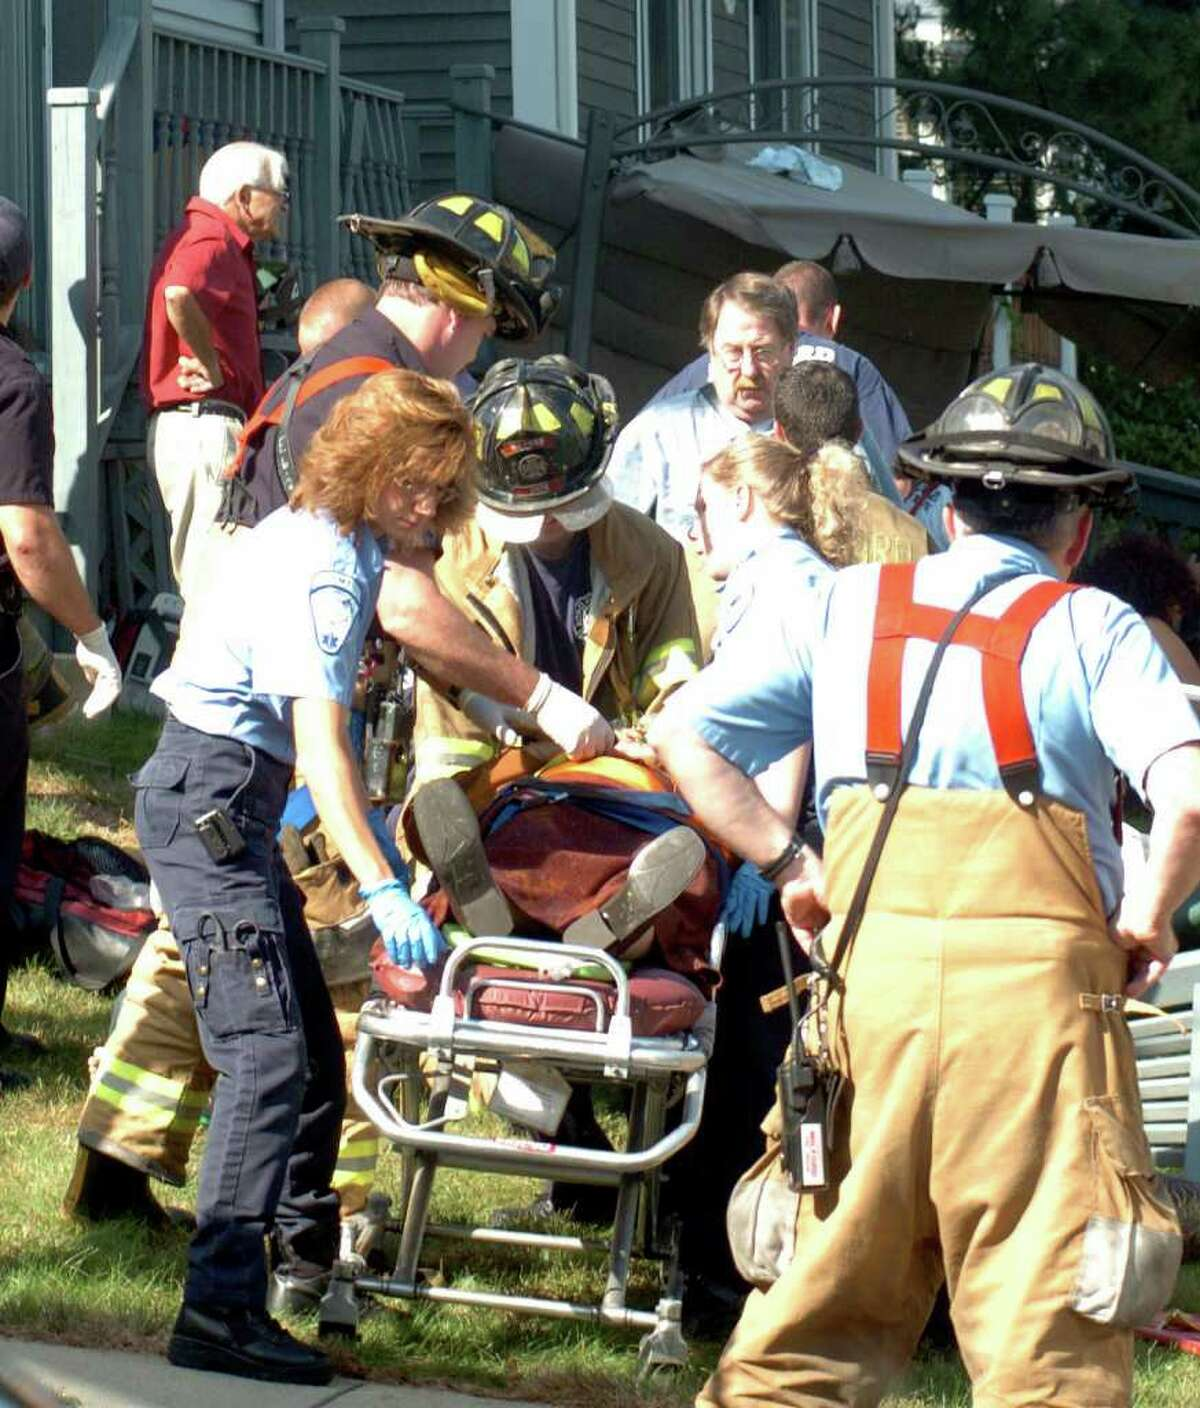 The scene after a deck collapsed at 25 Gillette St. in Milford, Conn. on Sept. 26th, 2004.